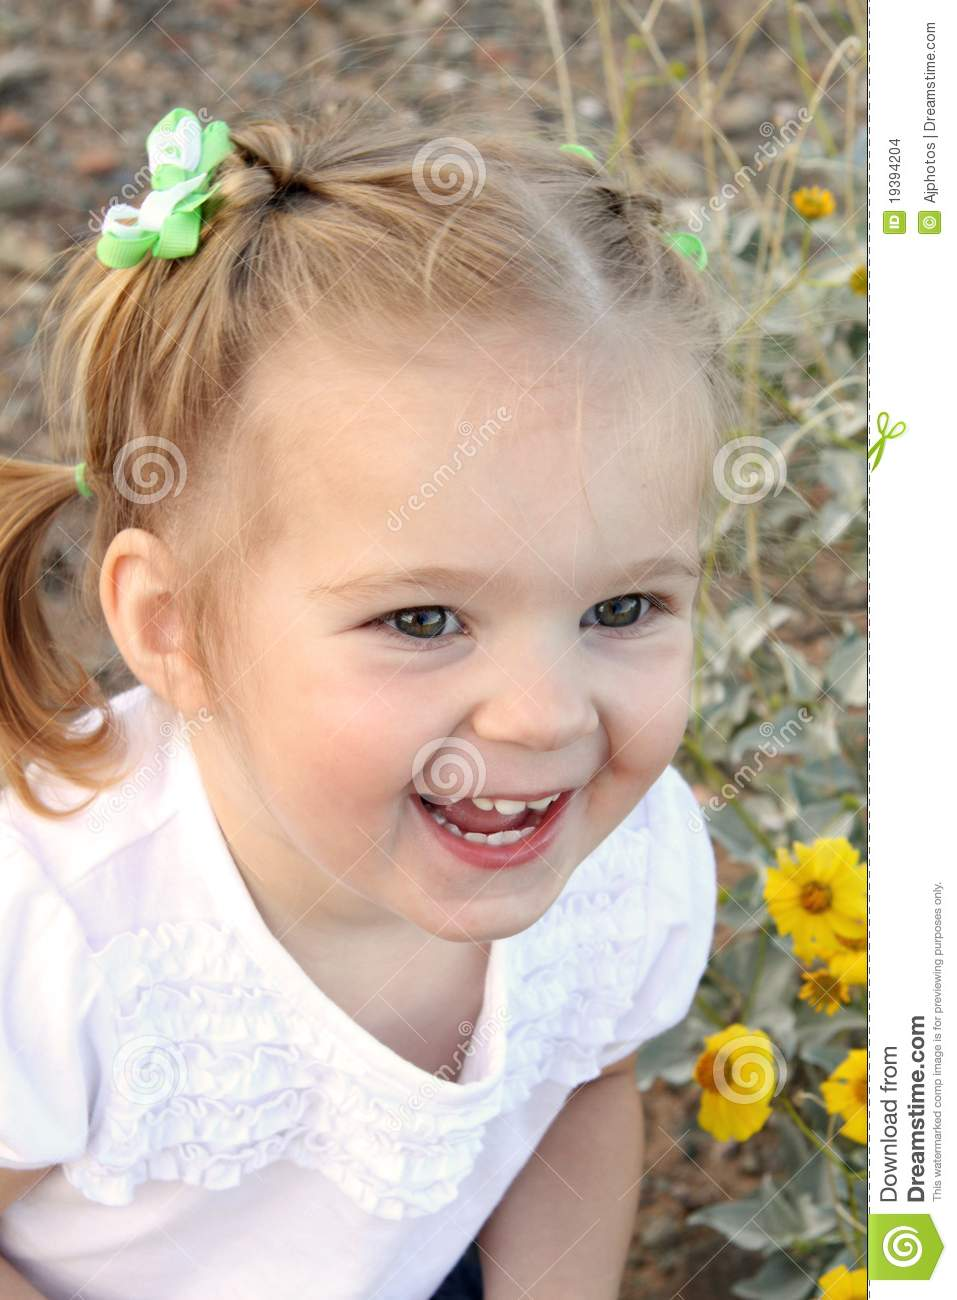 More similar stock images of ` Little Girl Toddler Smiling `